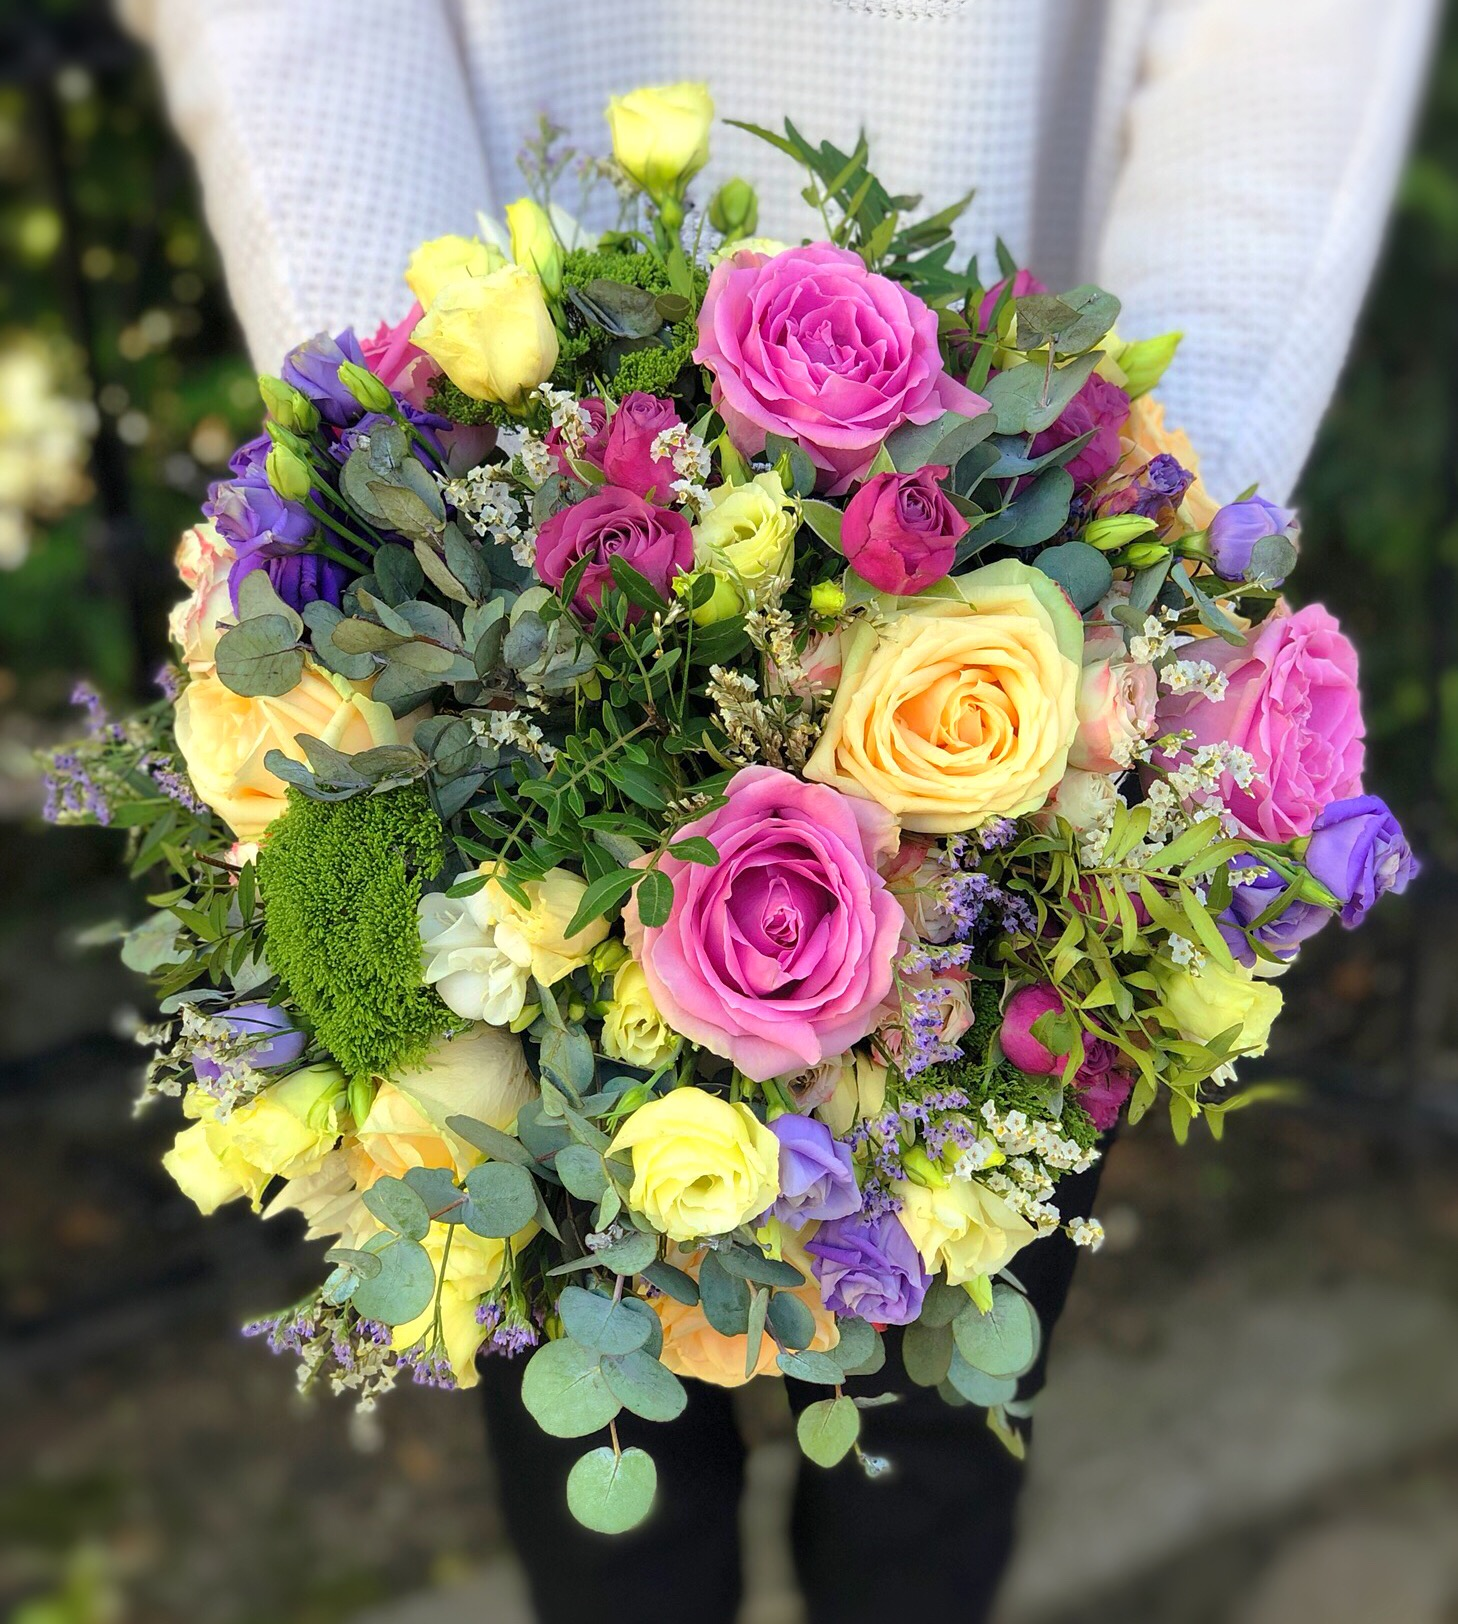 Mixed Delicate Flowers And Greenery Make This Bouquet Looking Organic